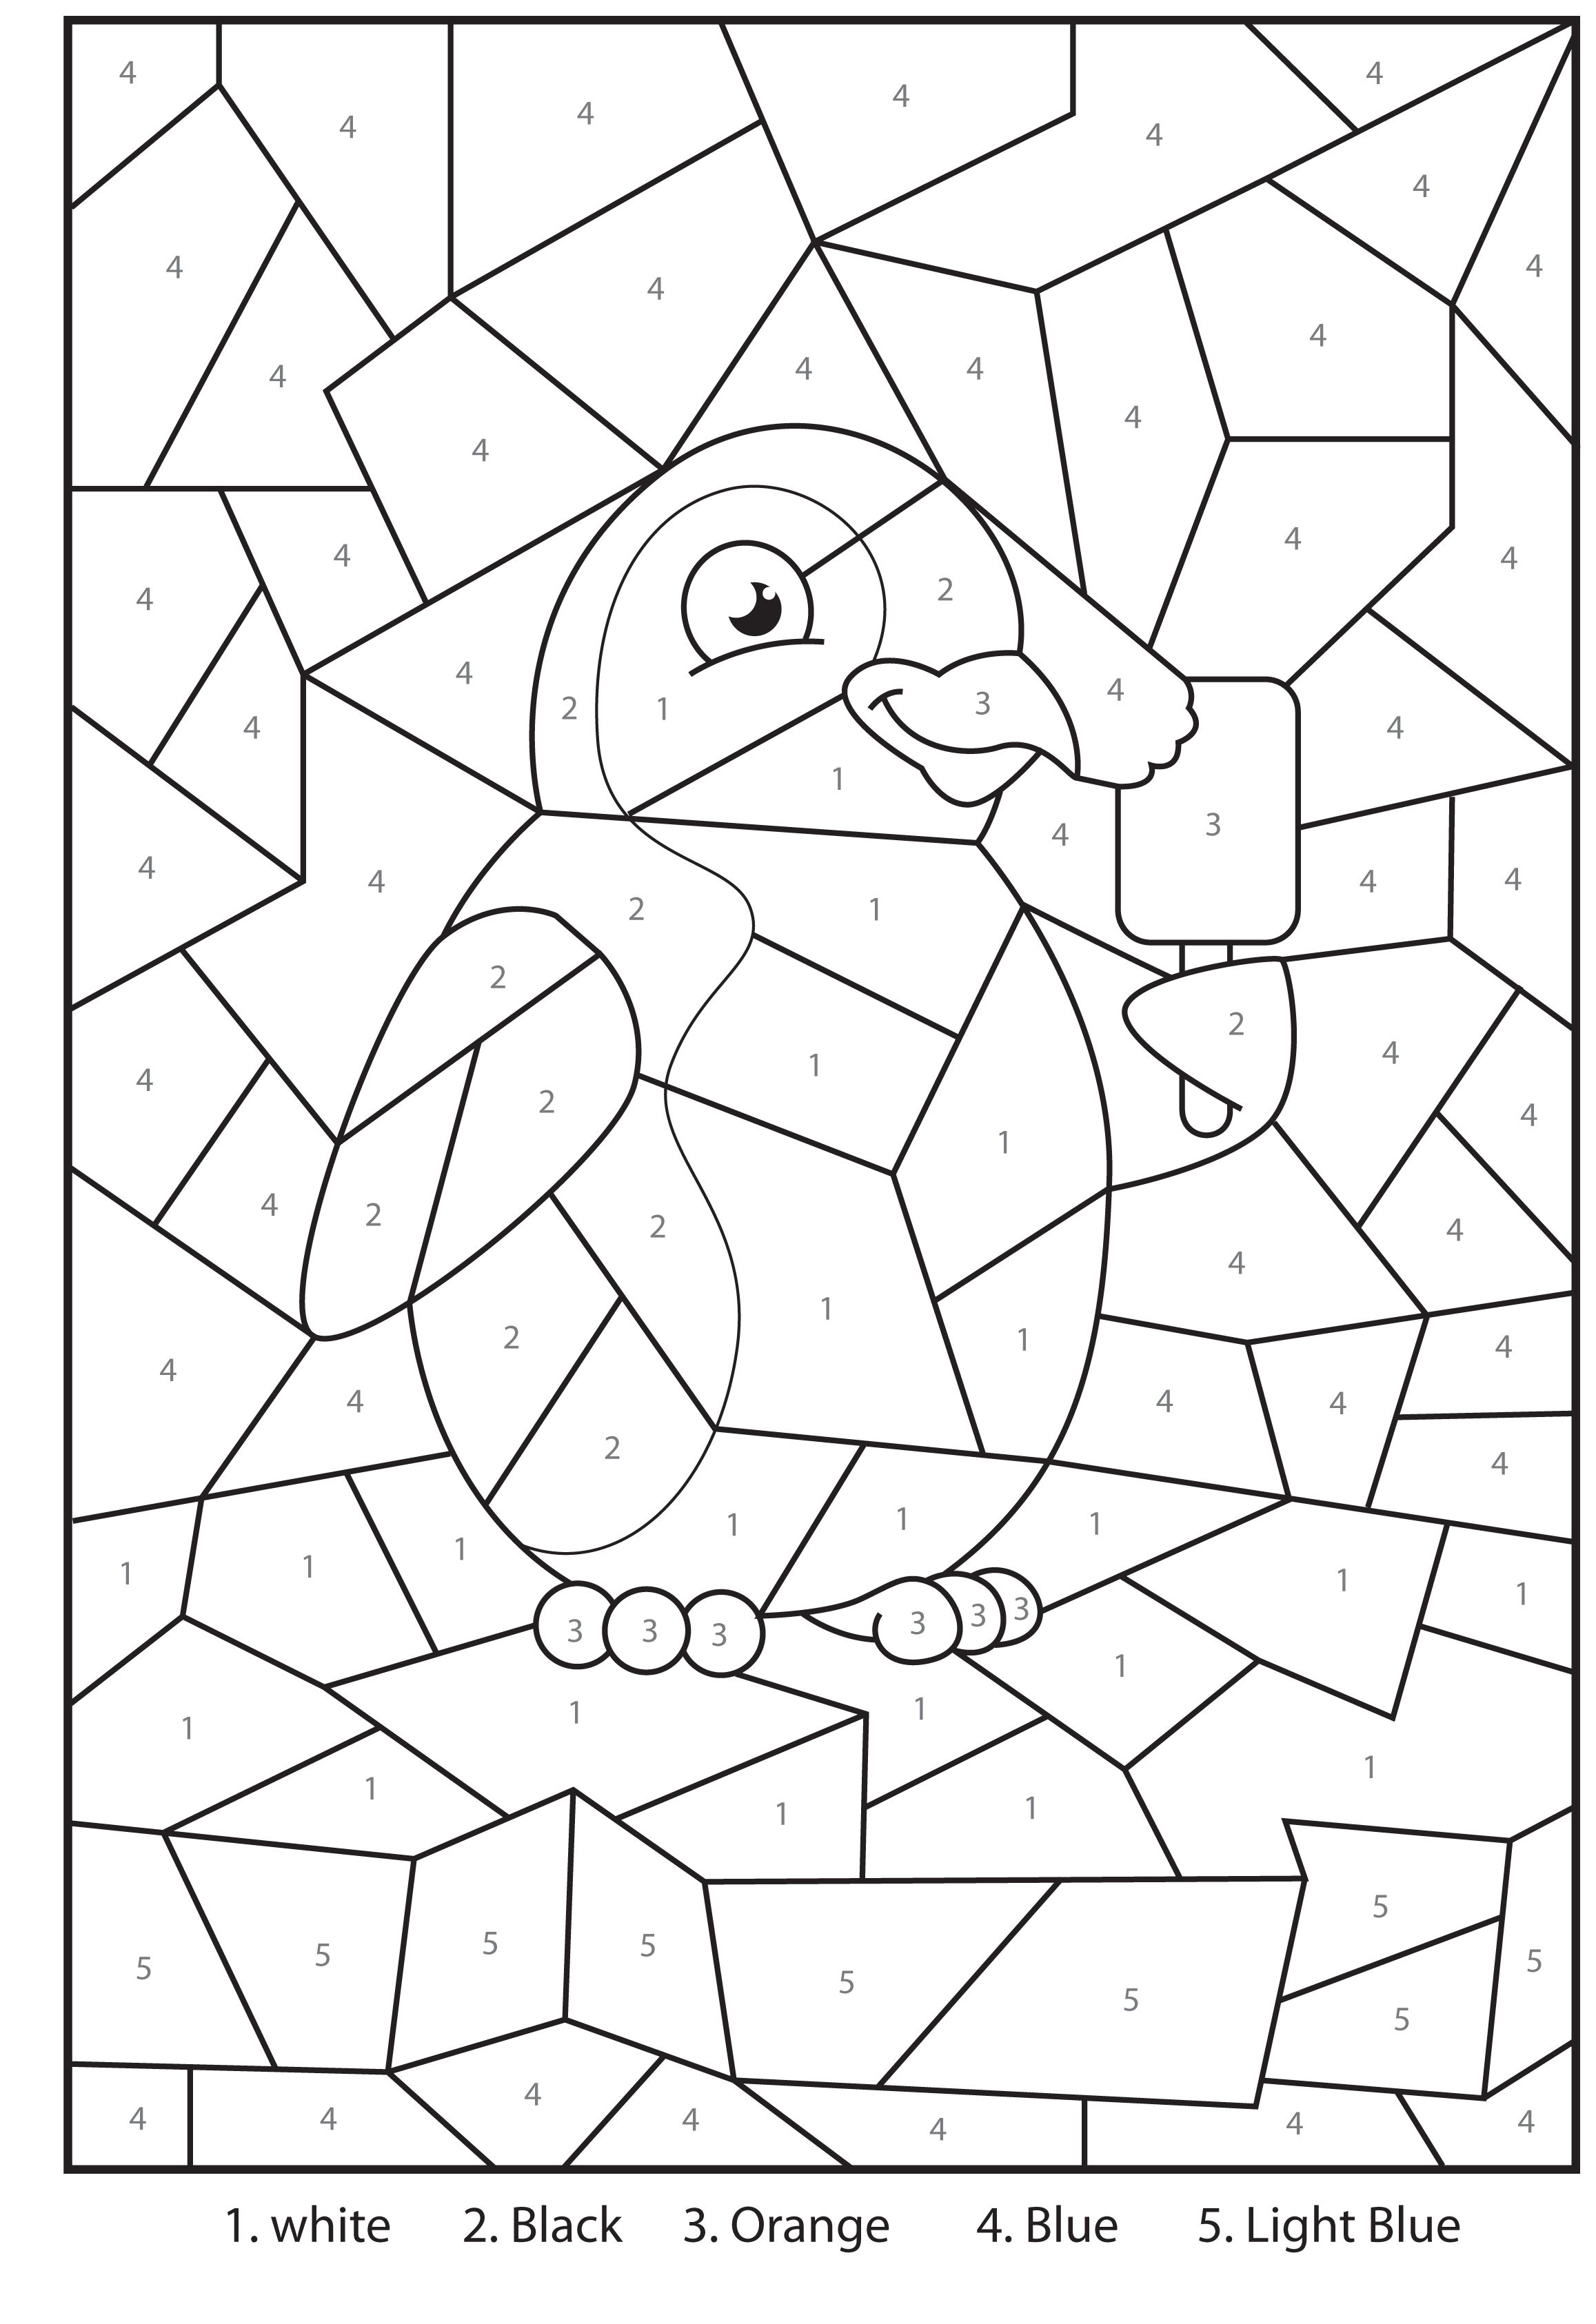 Free Printable Penguin At The Zoo Colour By Numbers Activity For ...